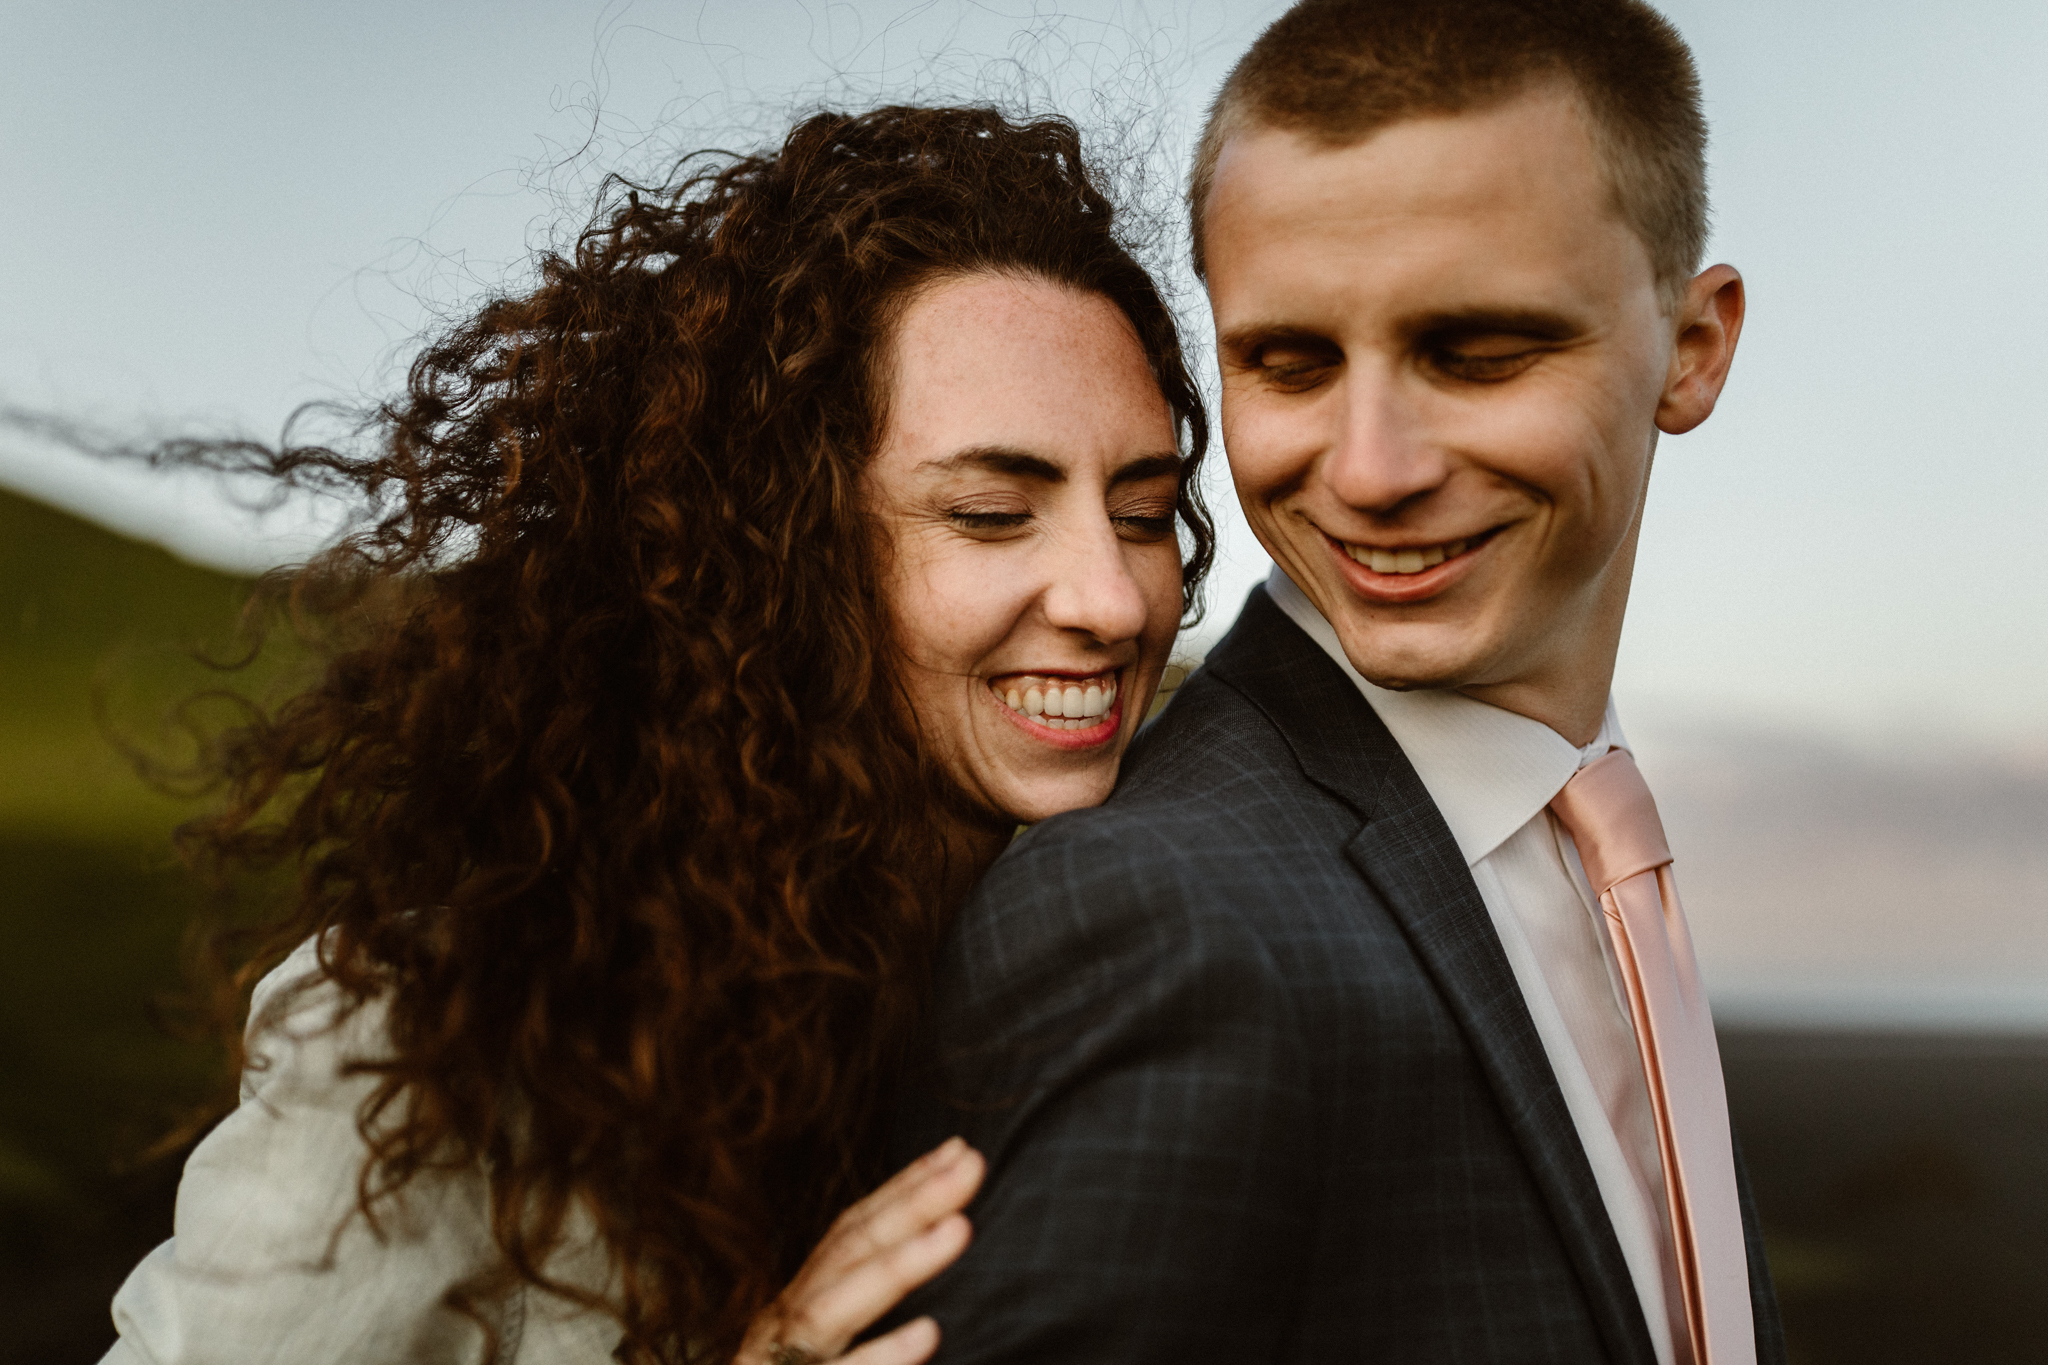 A coulple loving on each other after they eloped in Southern Iceland. Just the two of them, in the most genuine and intimate way.